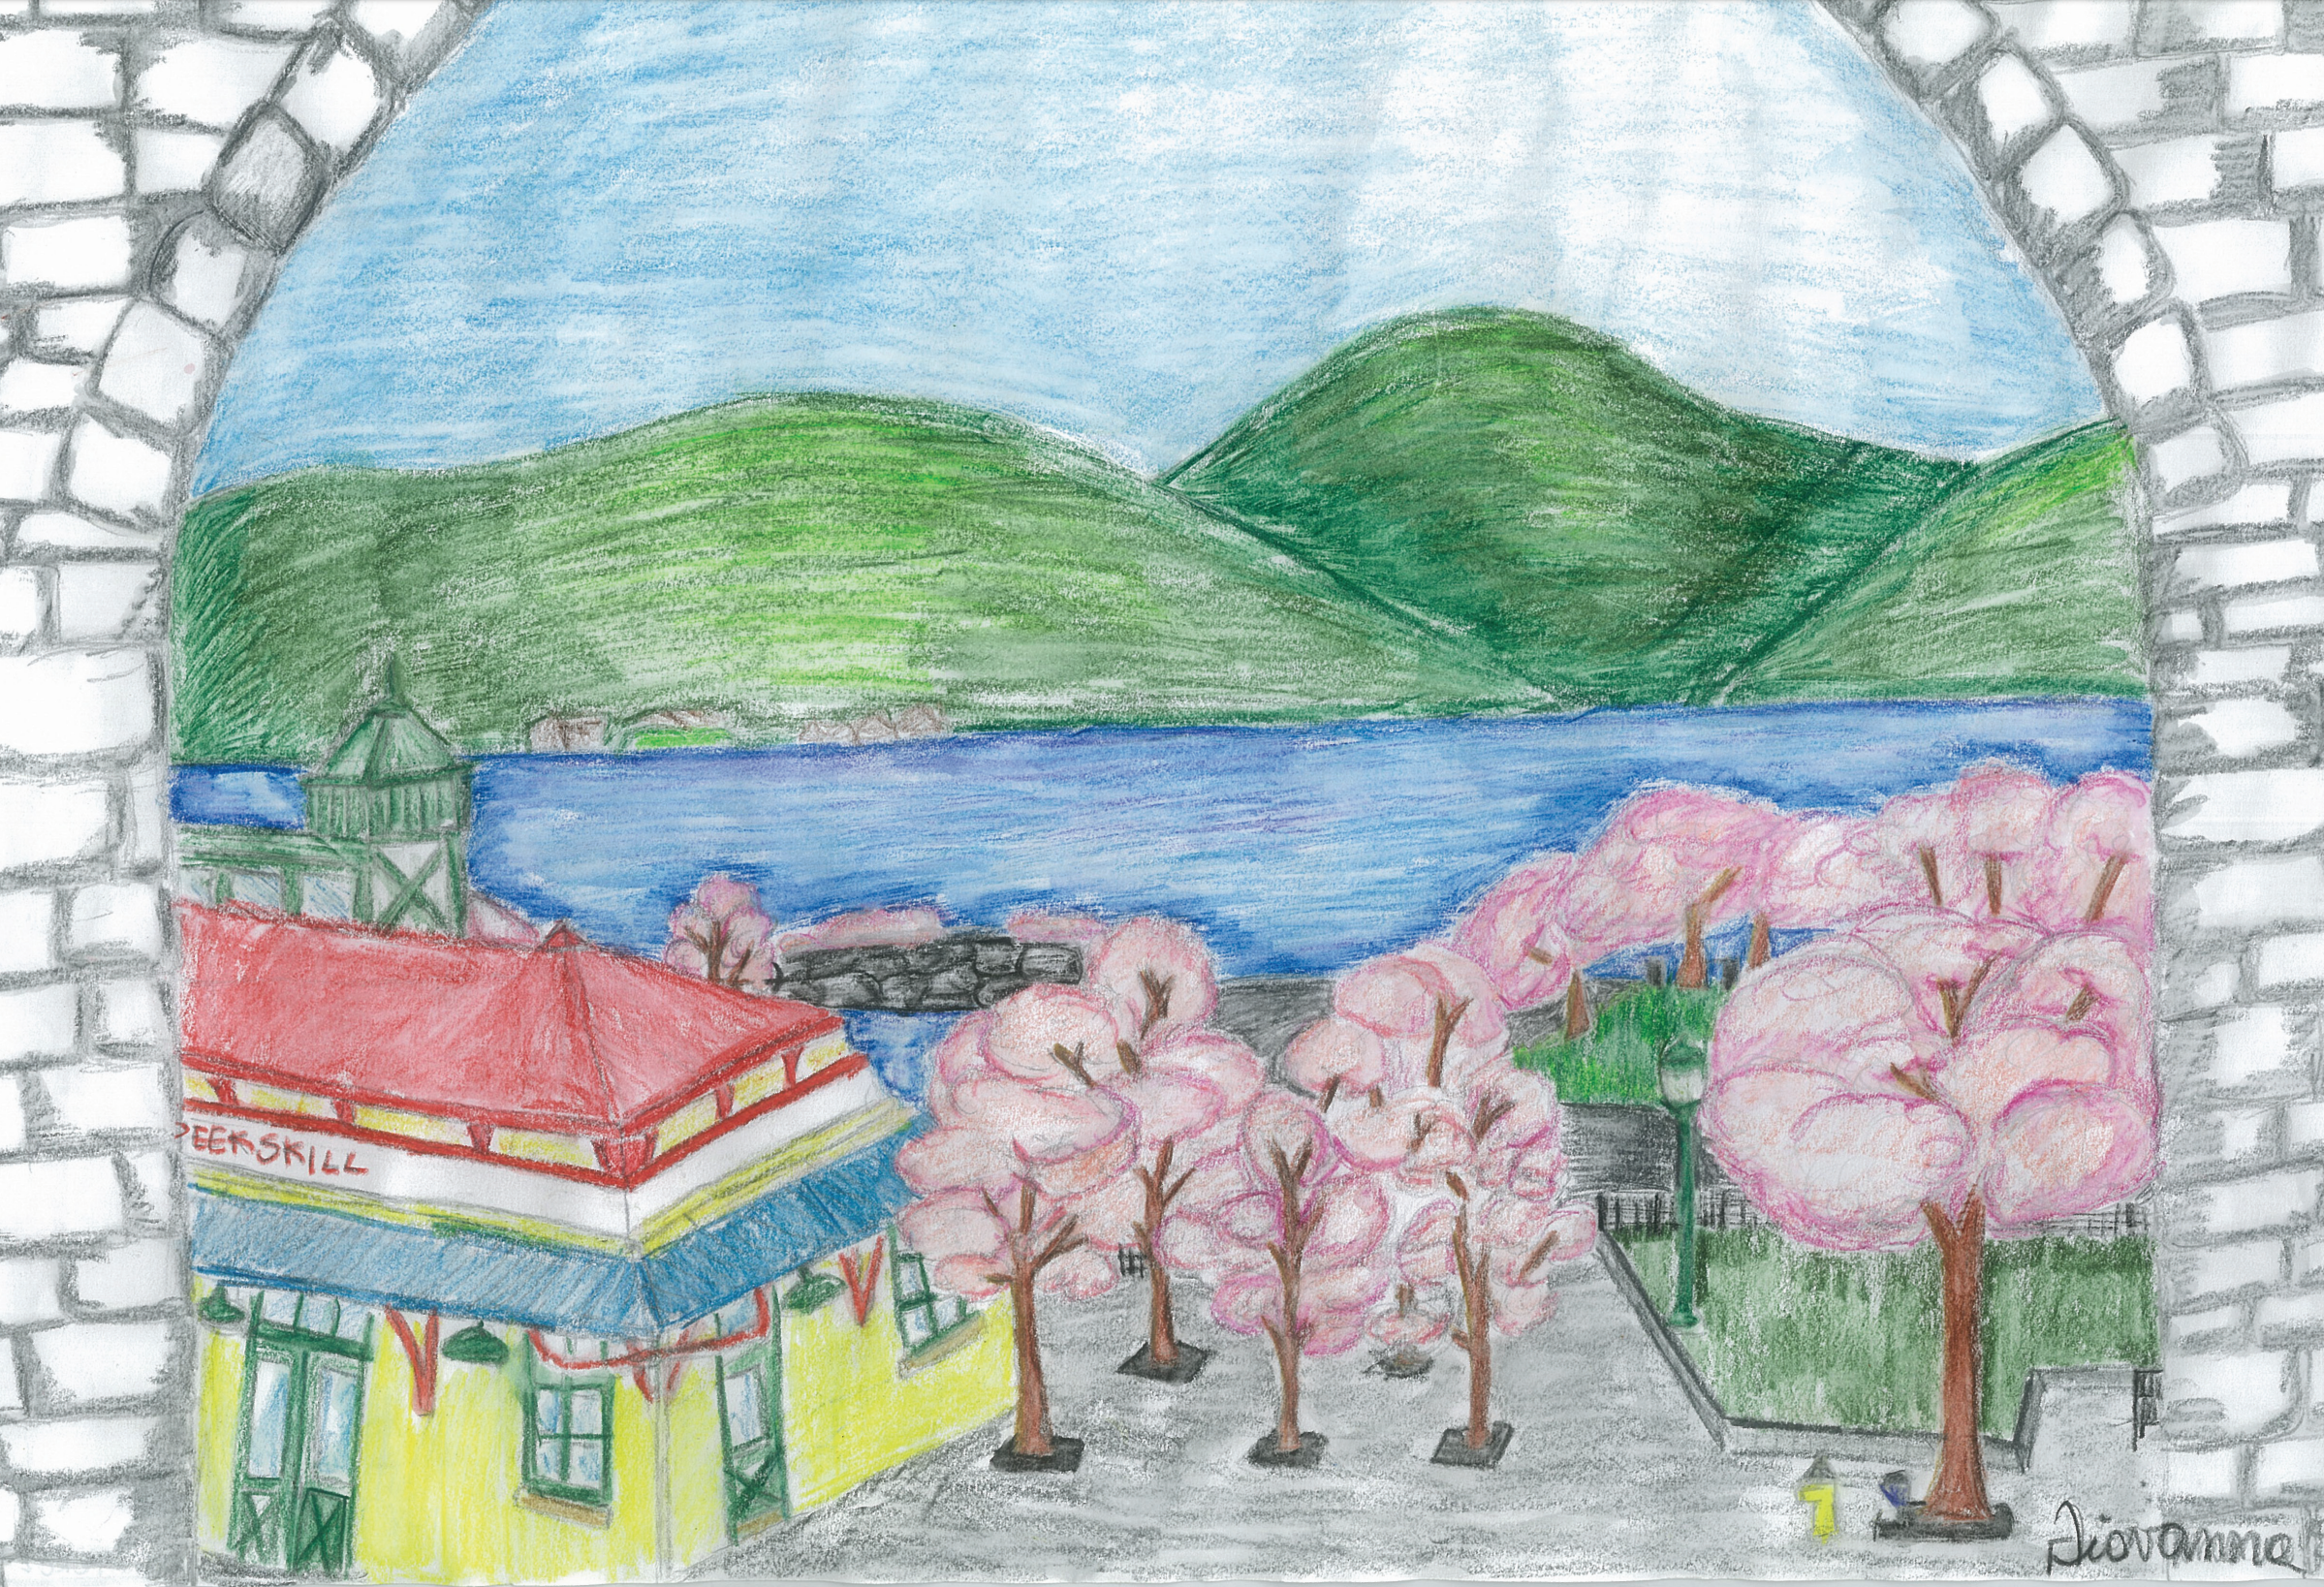 Manzer's Sponsors Peekskill, NY, Rotary Club's 2nd Annual Cherry Blossom Festival To Help Support Literacy